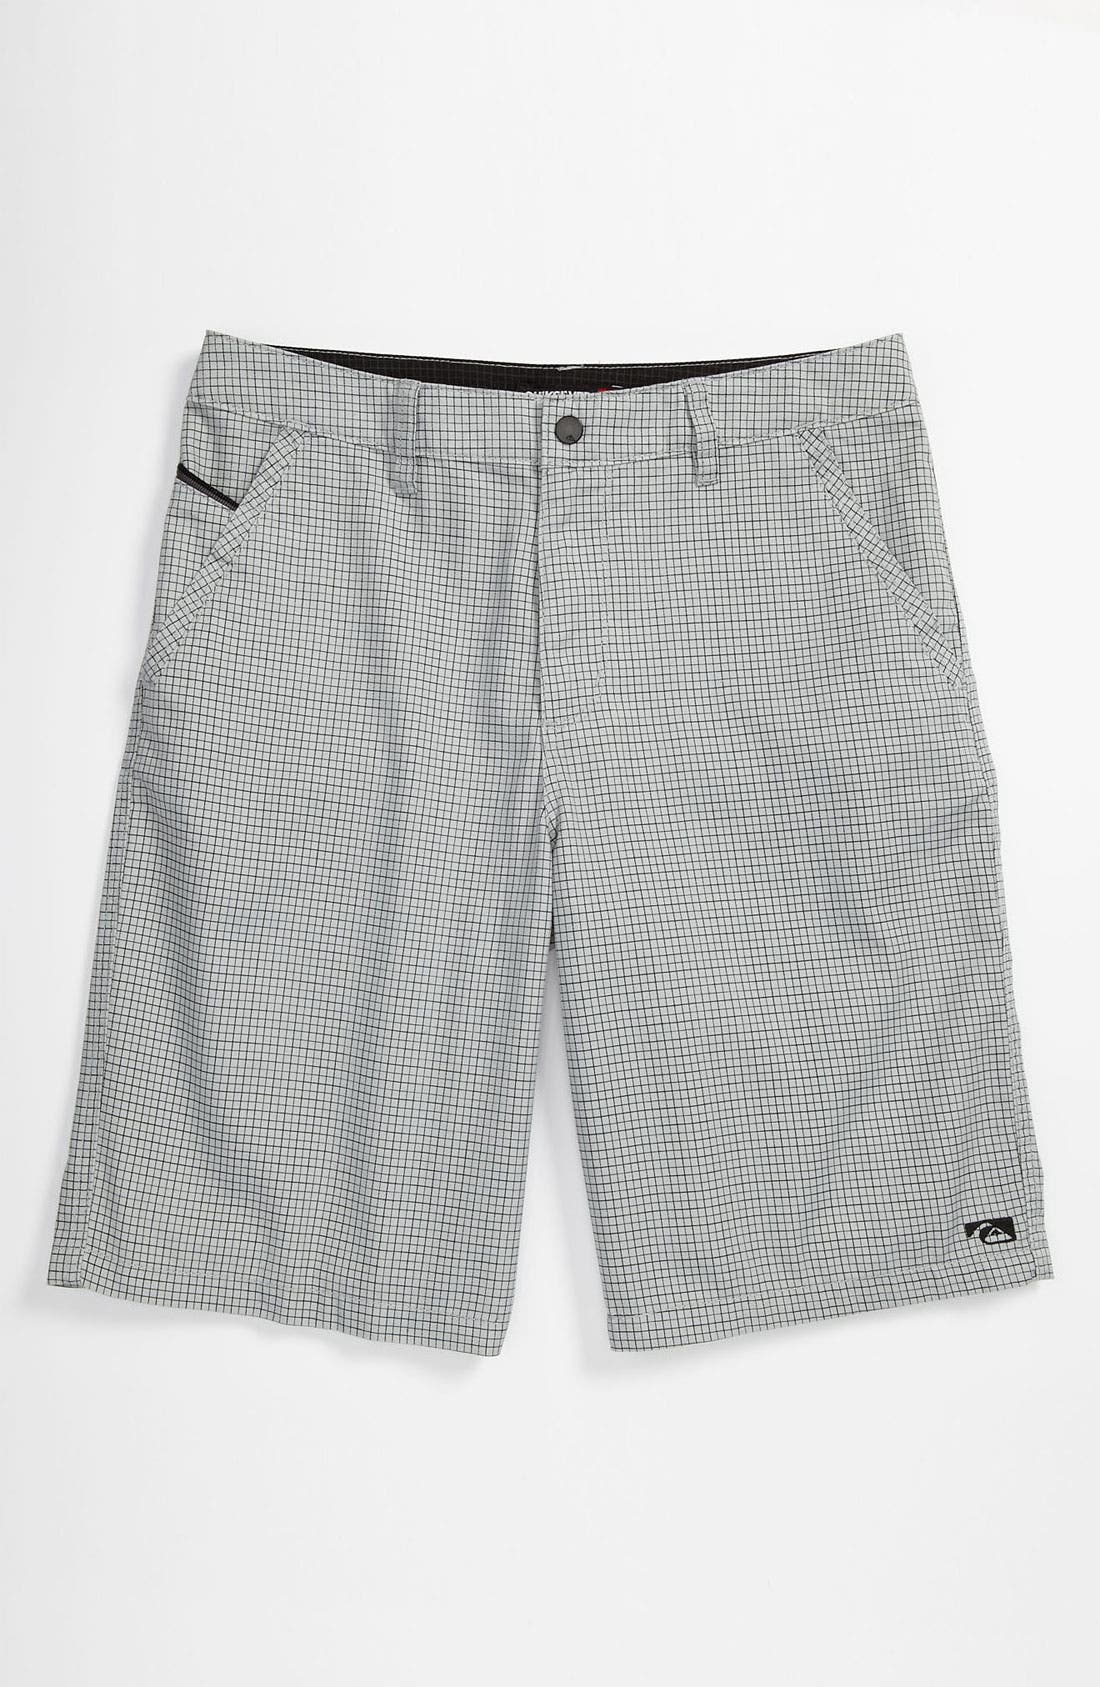 Main Image - Quiksilver 'All In' Shorts (Big Boys)